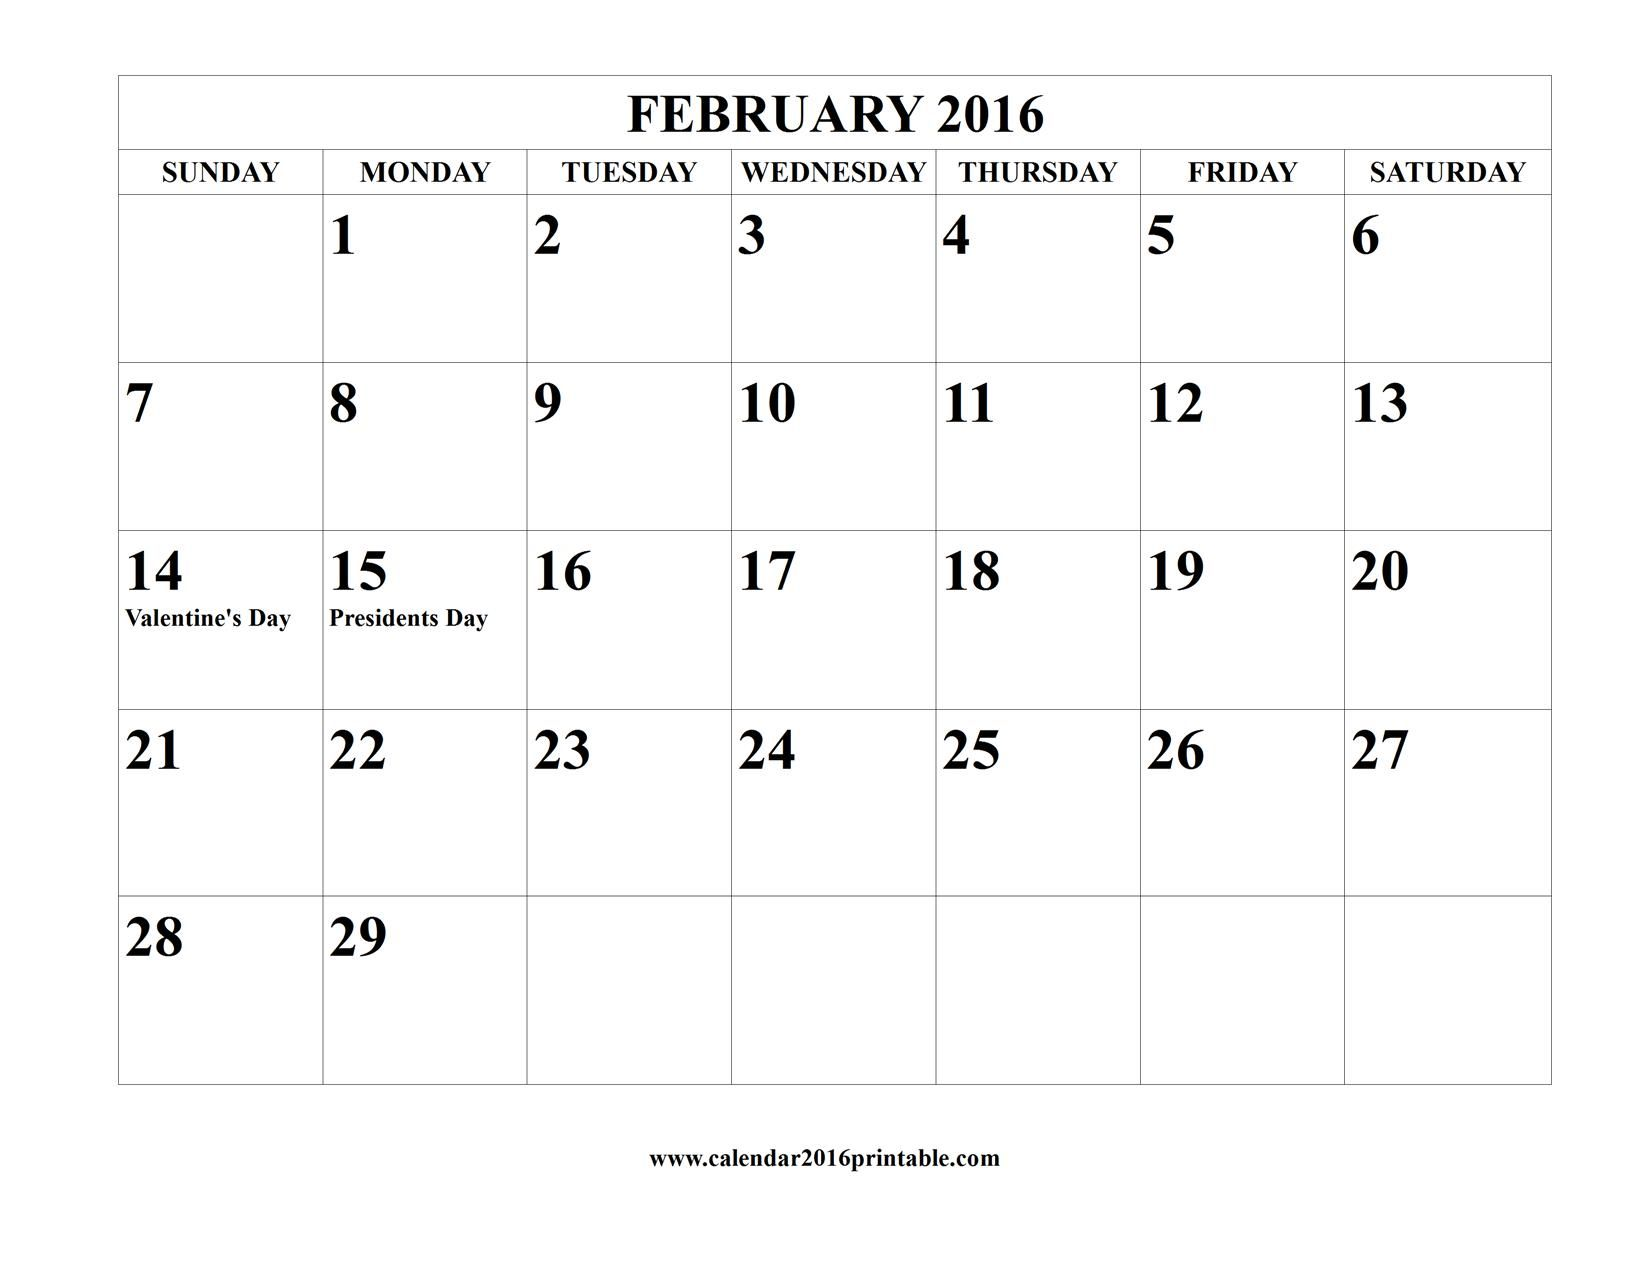 Next Year Calendar : The best february calendar template ideas on